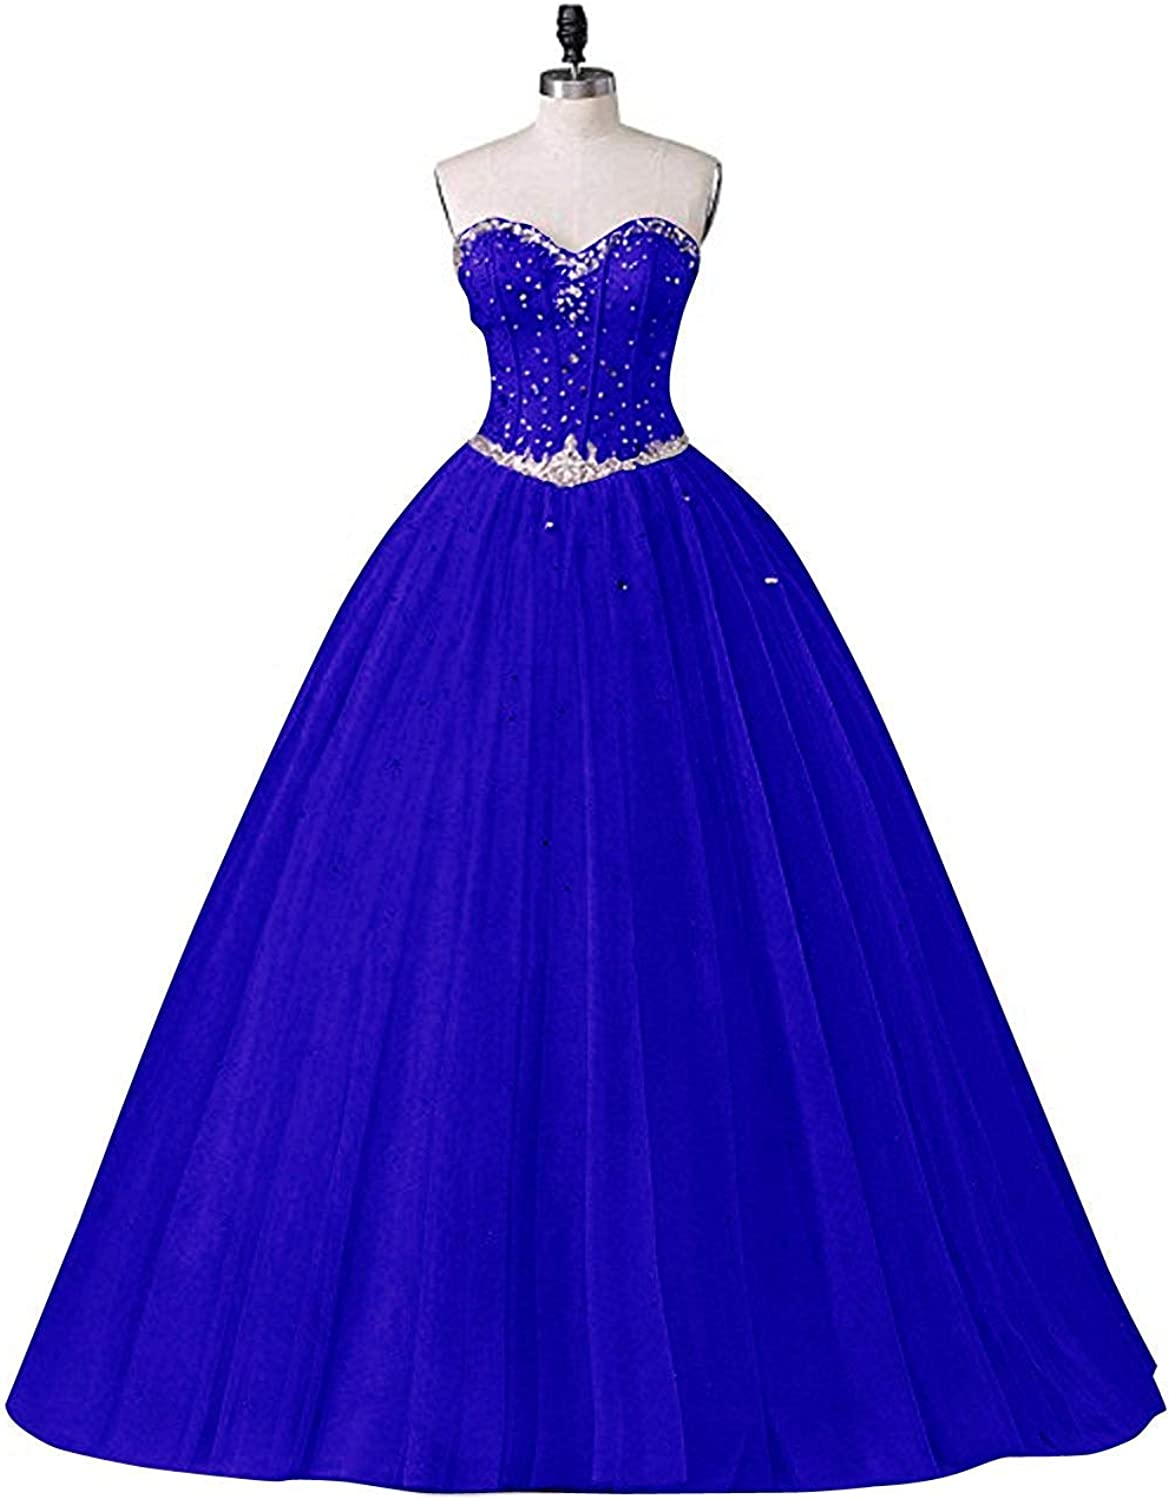 Darcy74Dulles Women's Ball Gown Royal bluee Backless Crystal Strapless Tulle Elegant Formal Long Dresses